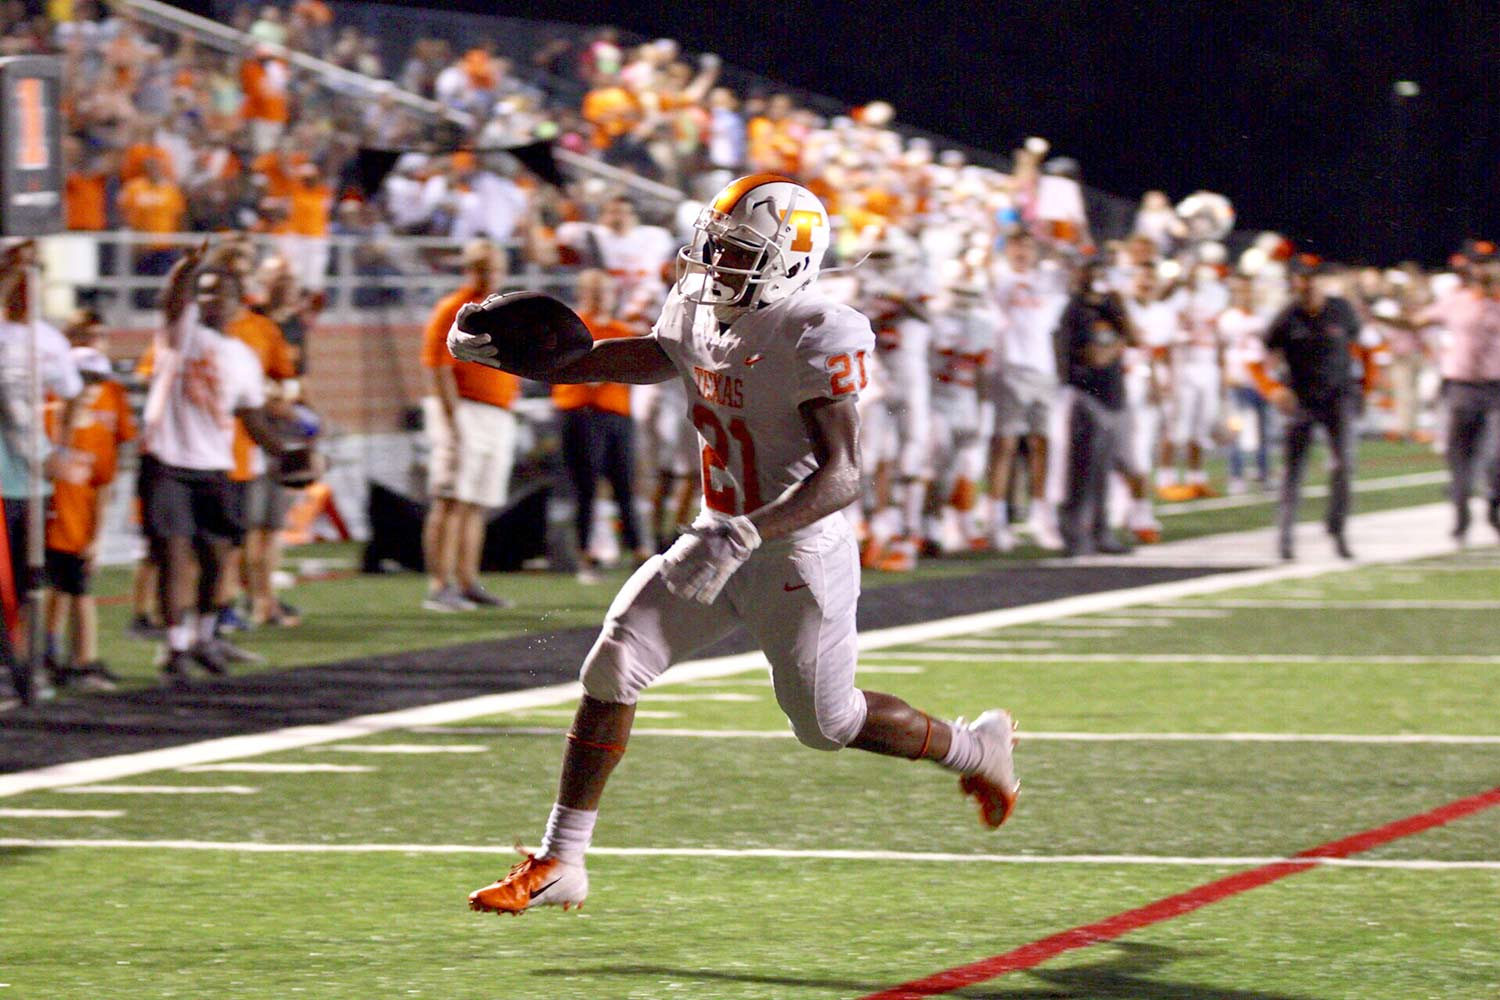 Running back Chris Sutton extends the ball as he crosses the goal line in the Texas High Tigers win against the Liberty Eylau Leopards September 14, 2018. The Tigers improved their record to 2-1 with the win against their cross--town rival.